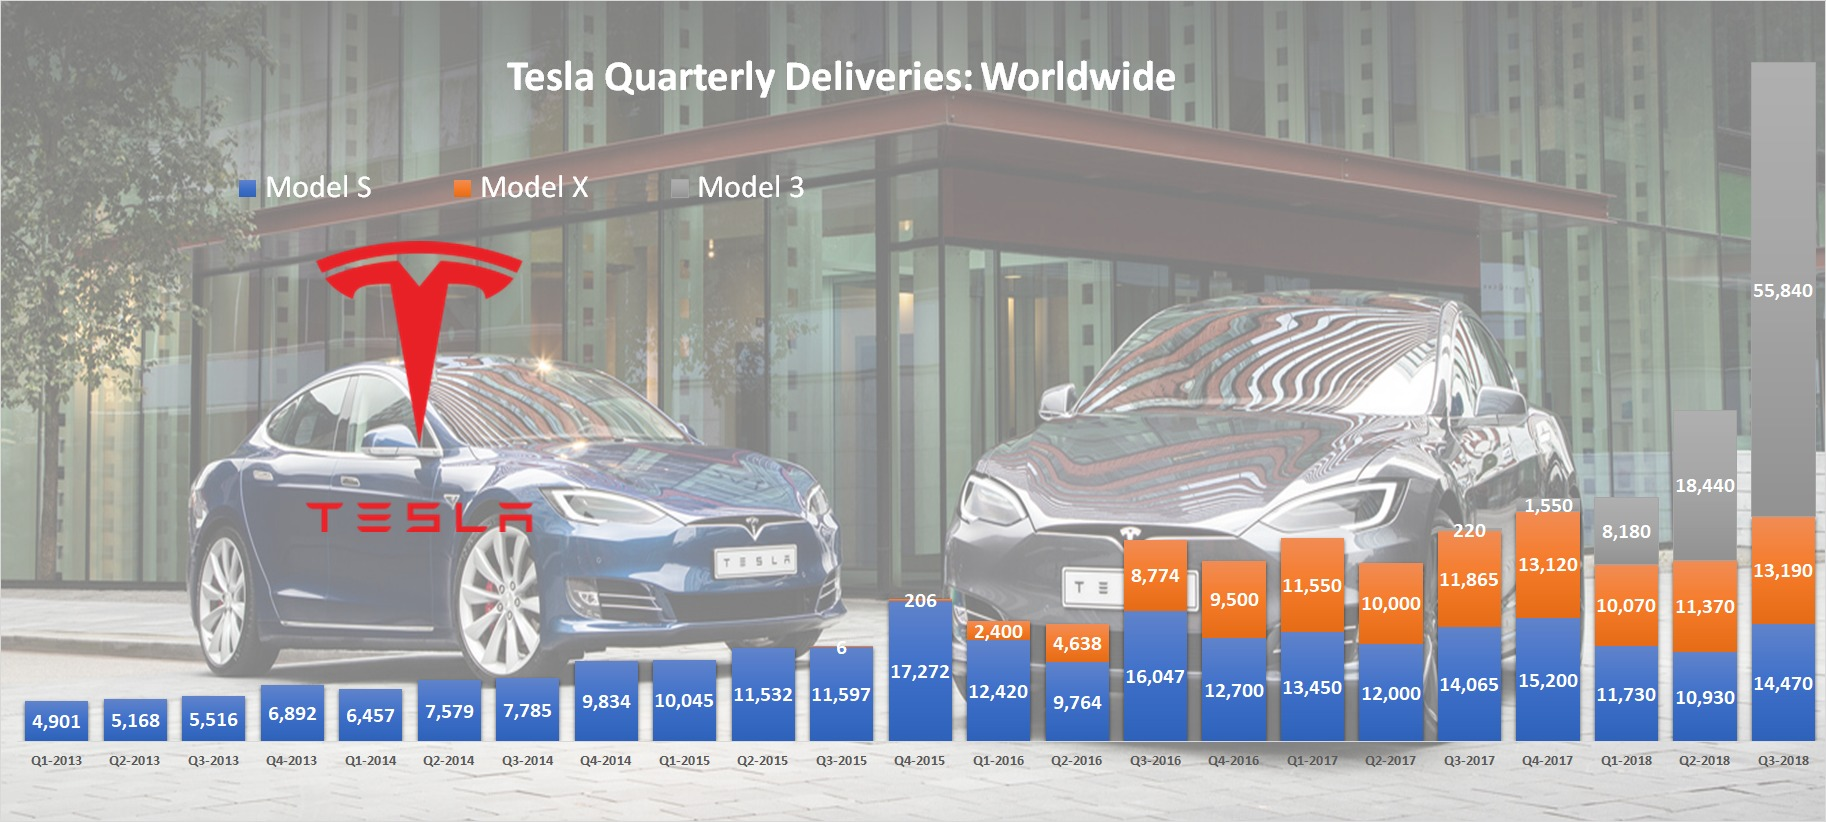 Tesla Worldwide Quarterly Deliveries All Models